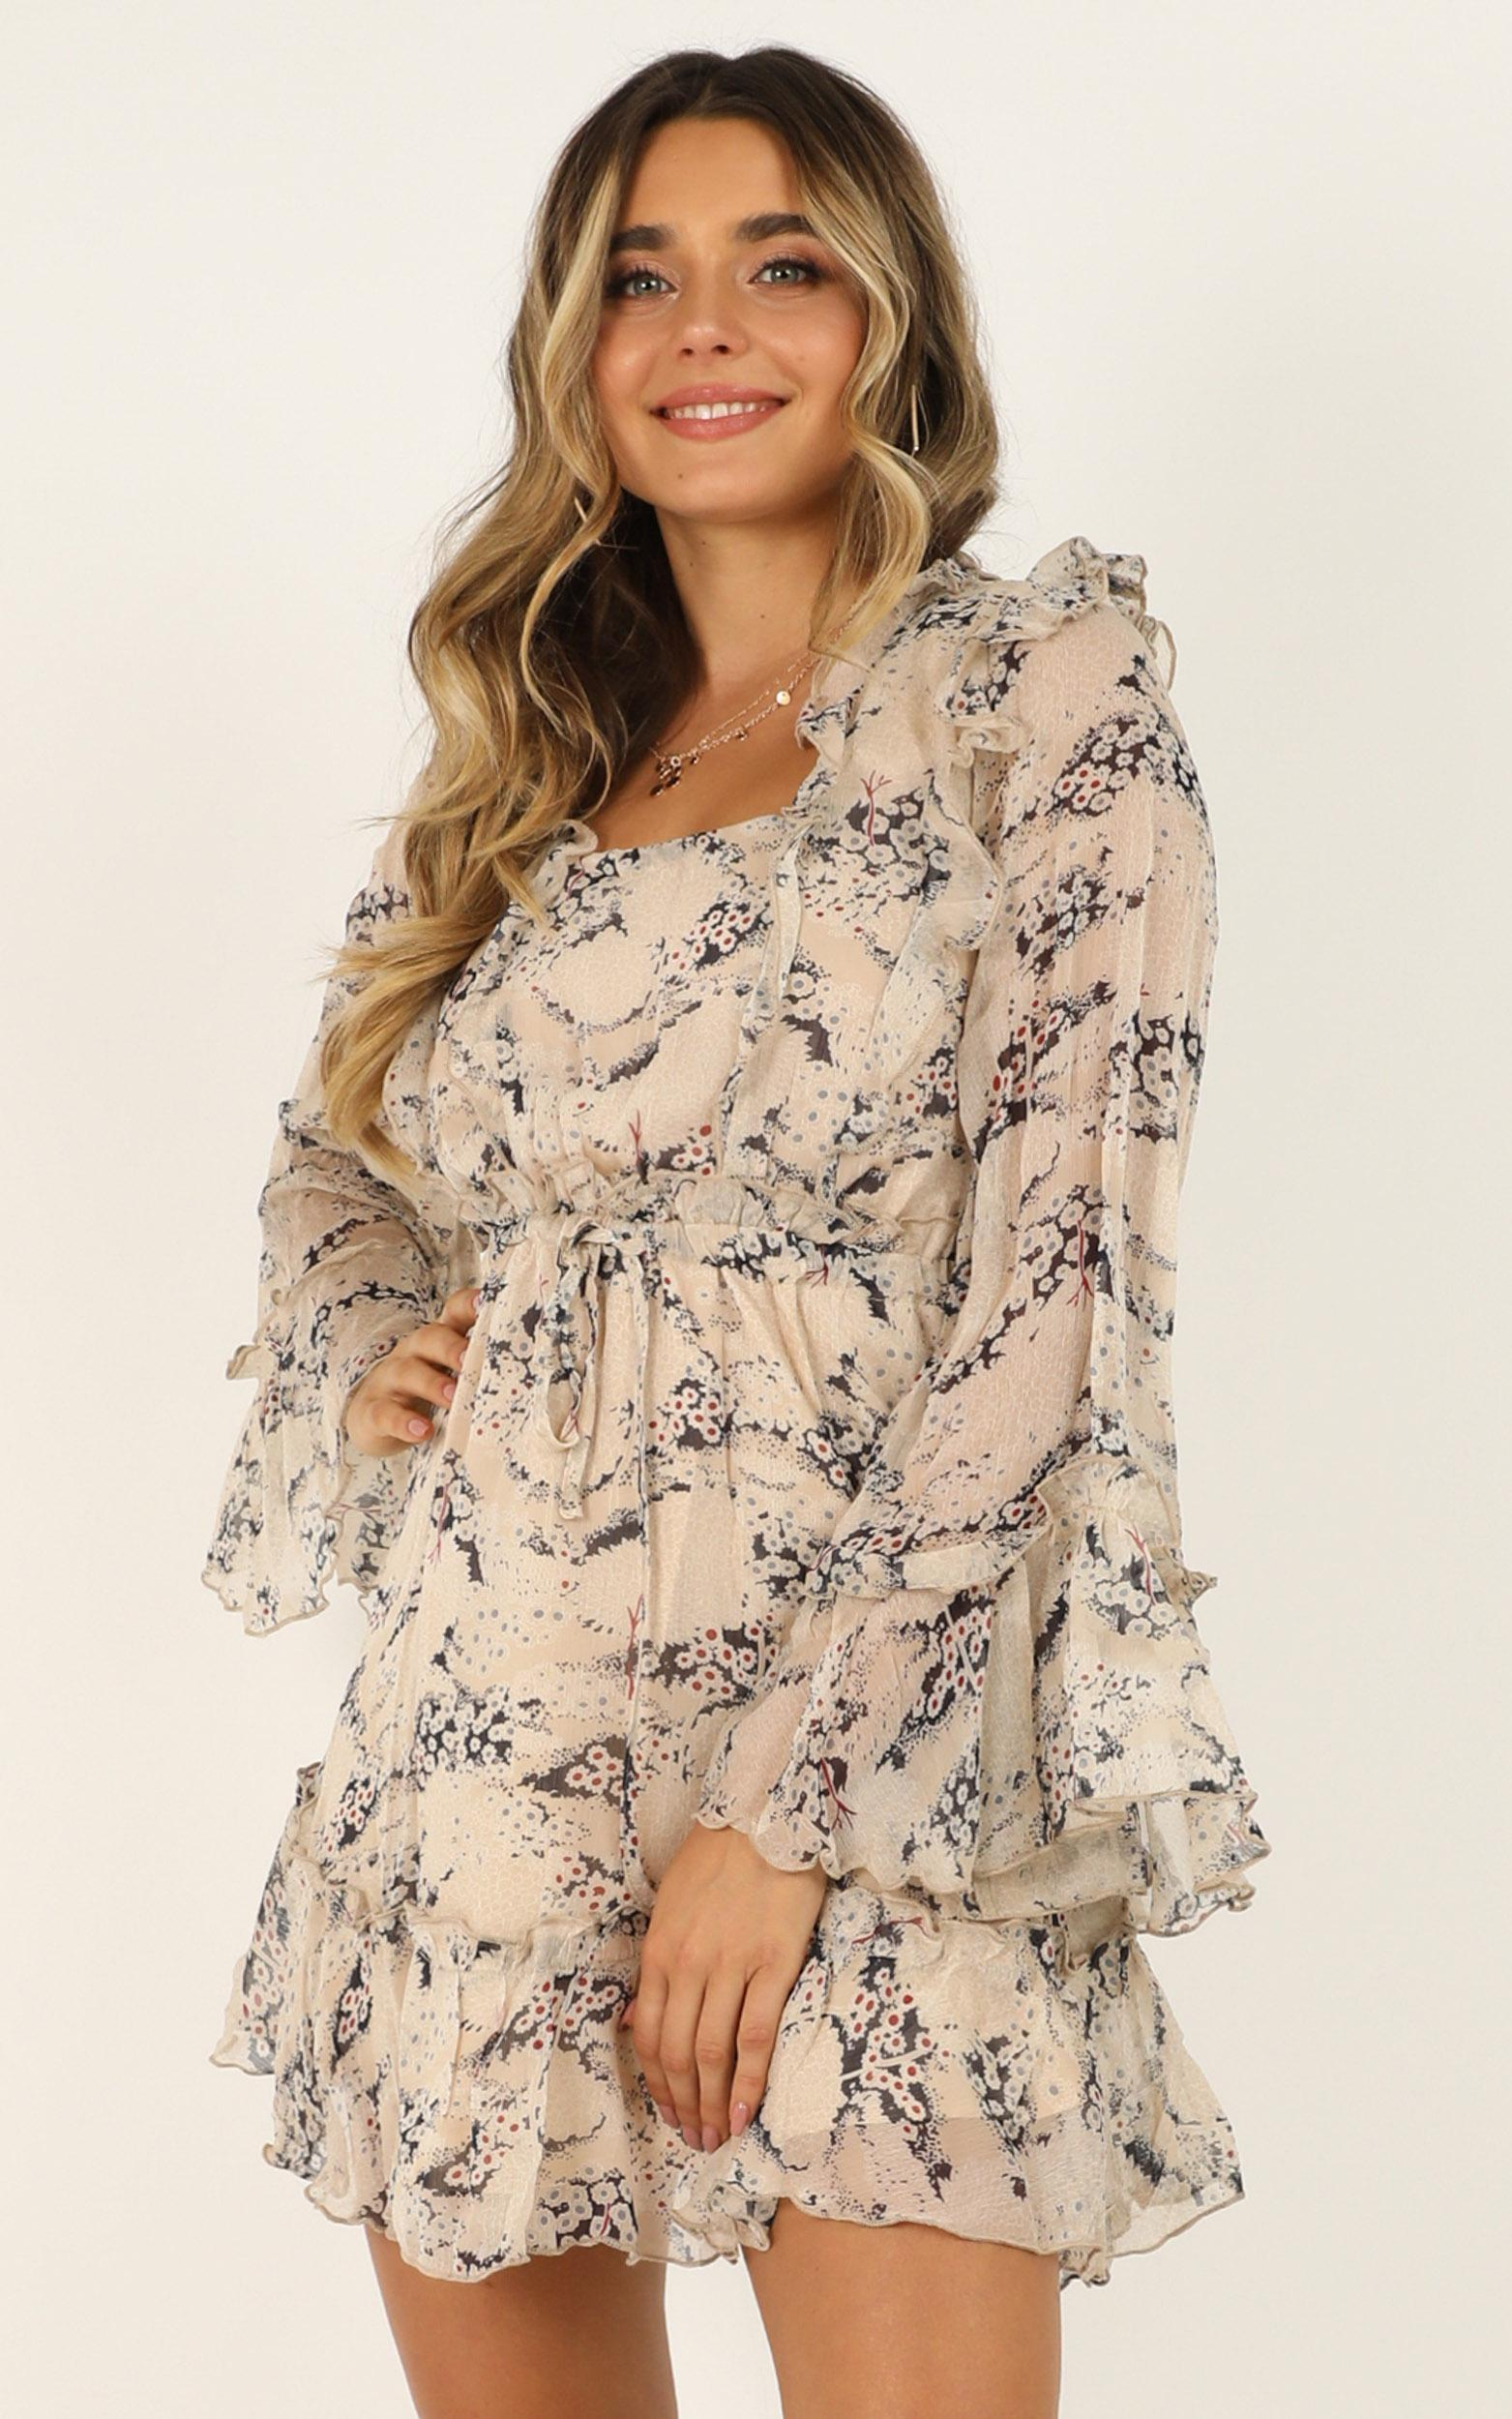 One Time Thing dress in cream floral - 12 (L), Cream, hi-res image number null